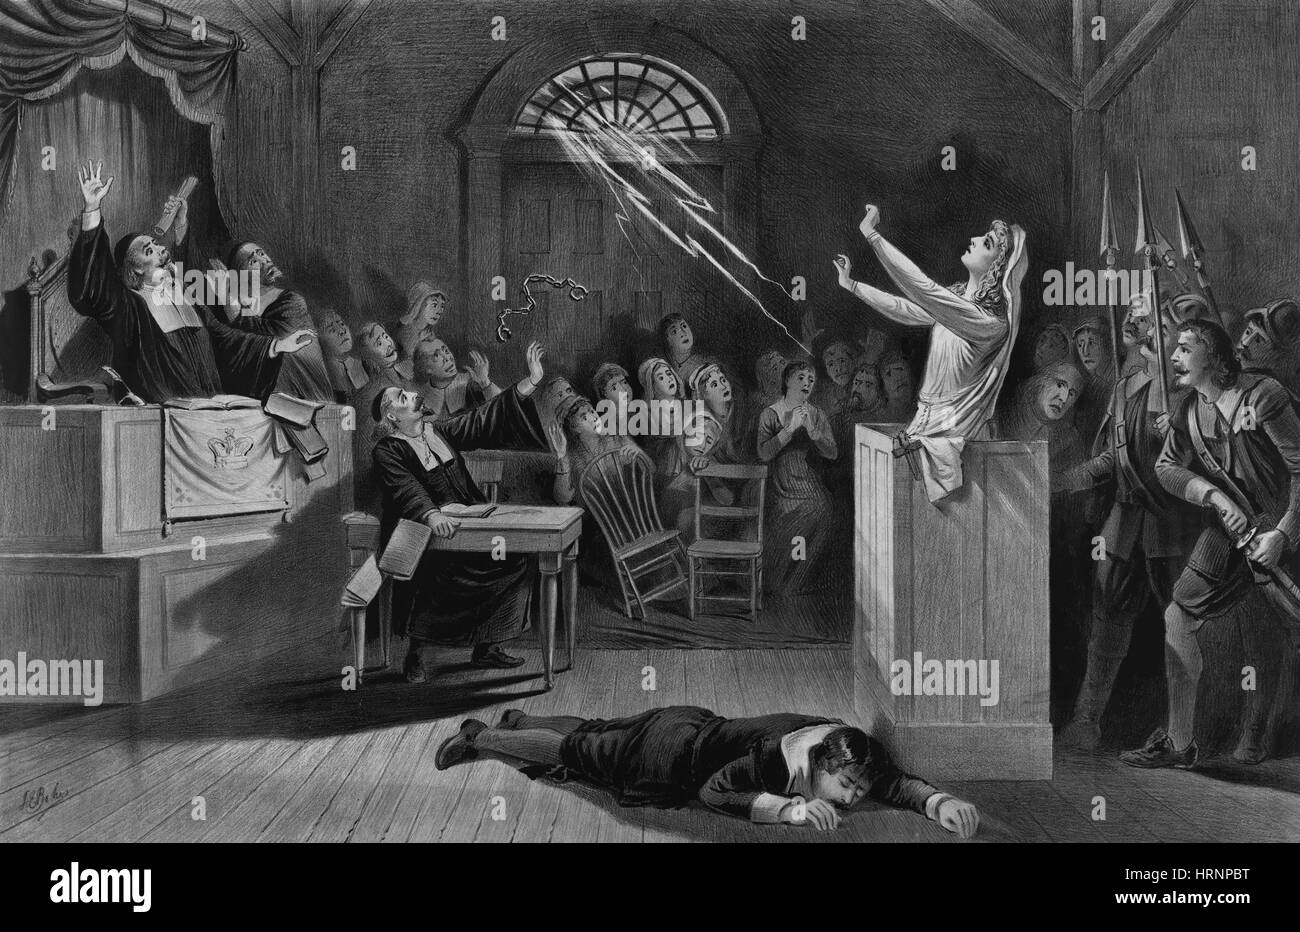 Salem Witch Trials, 1692-1693